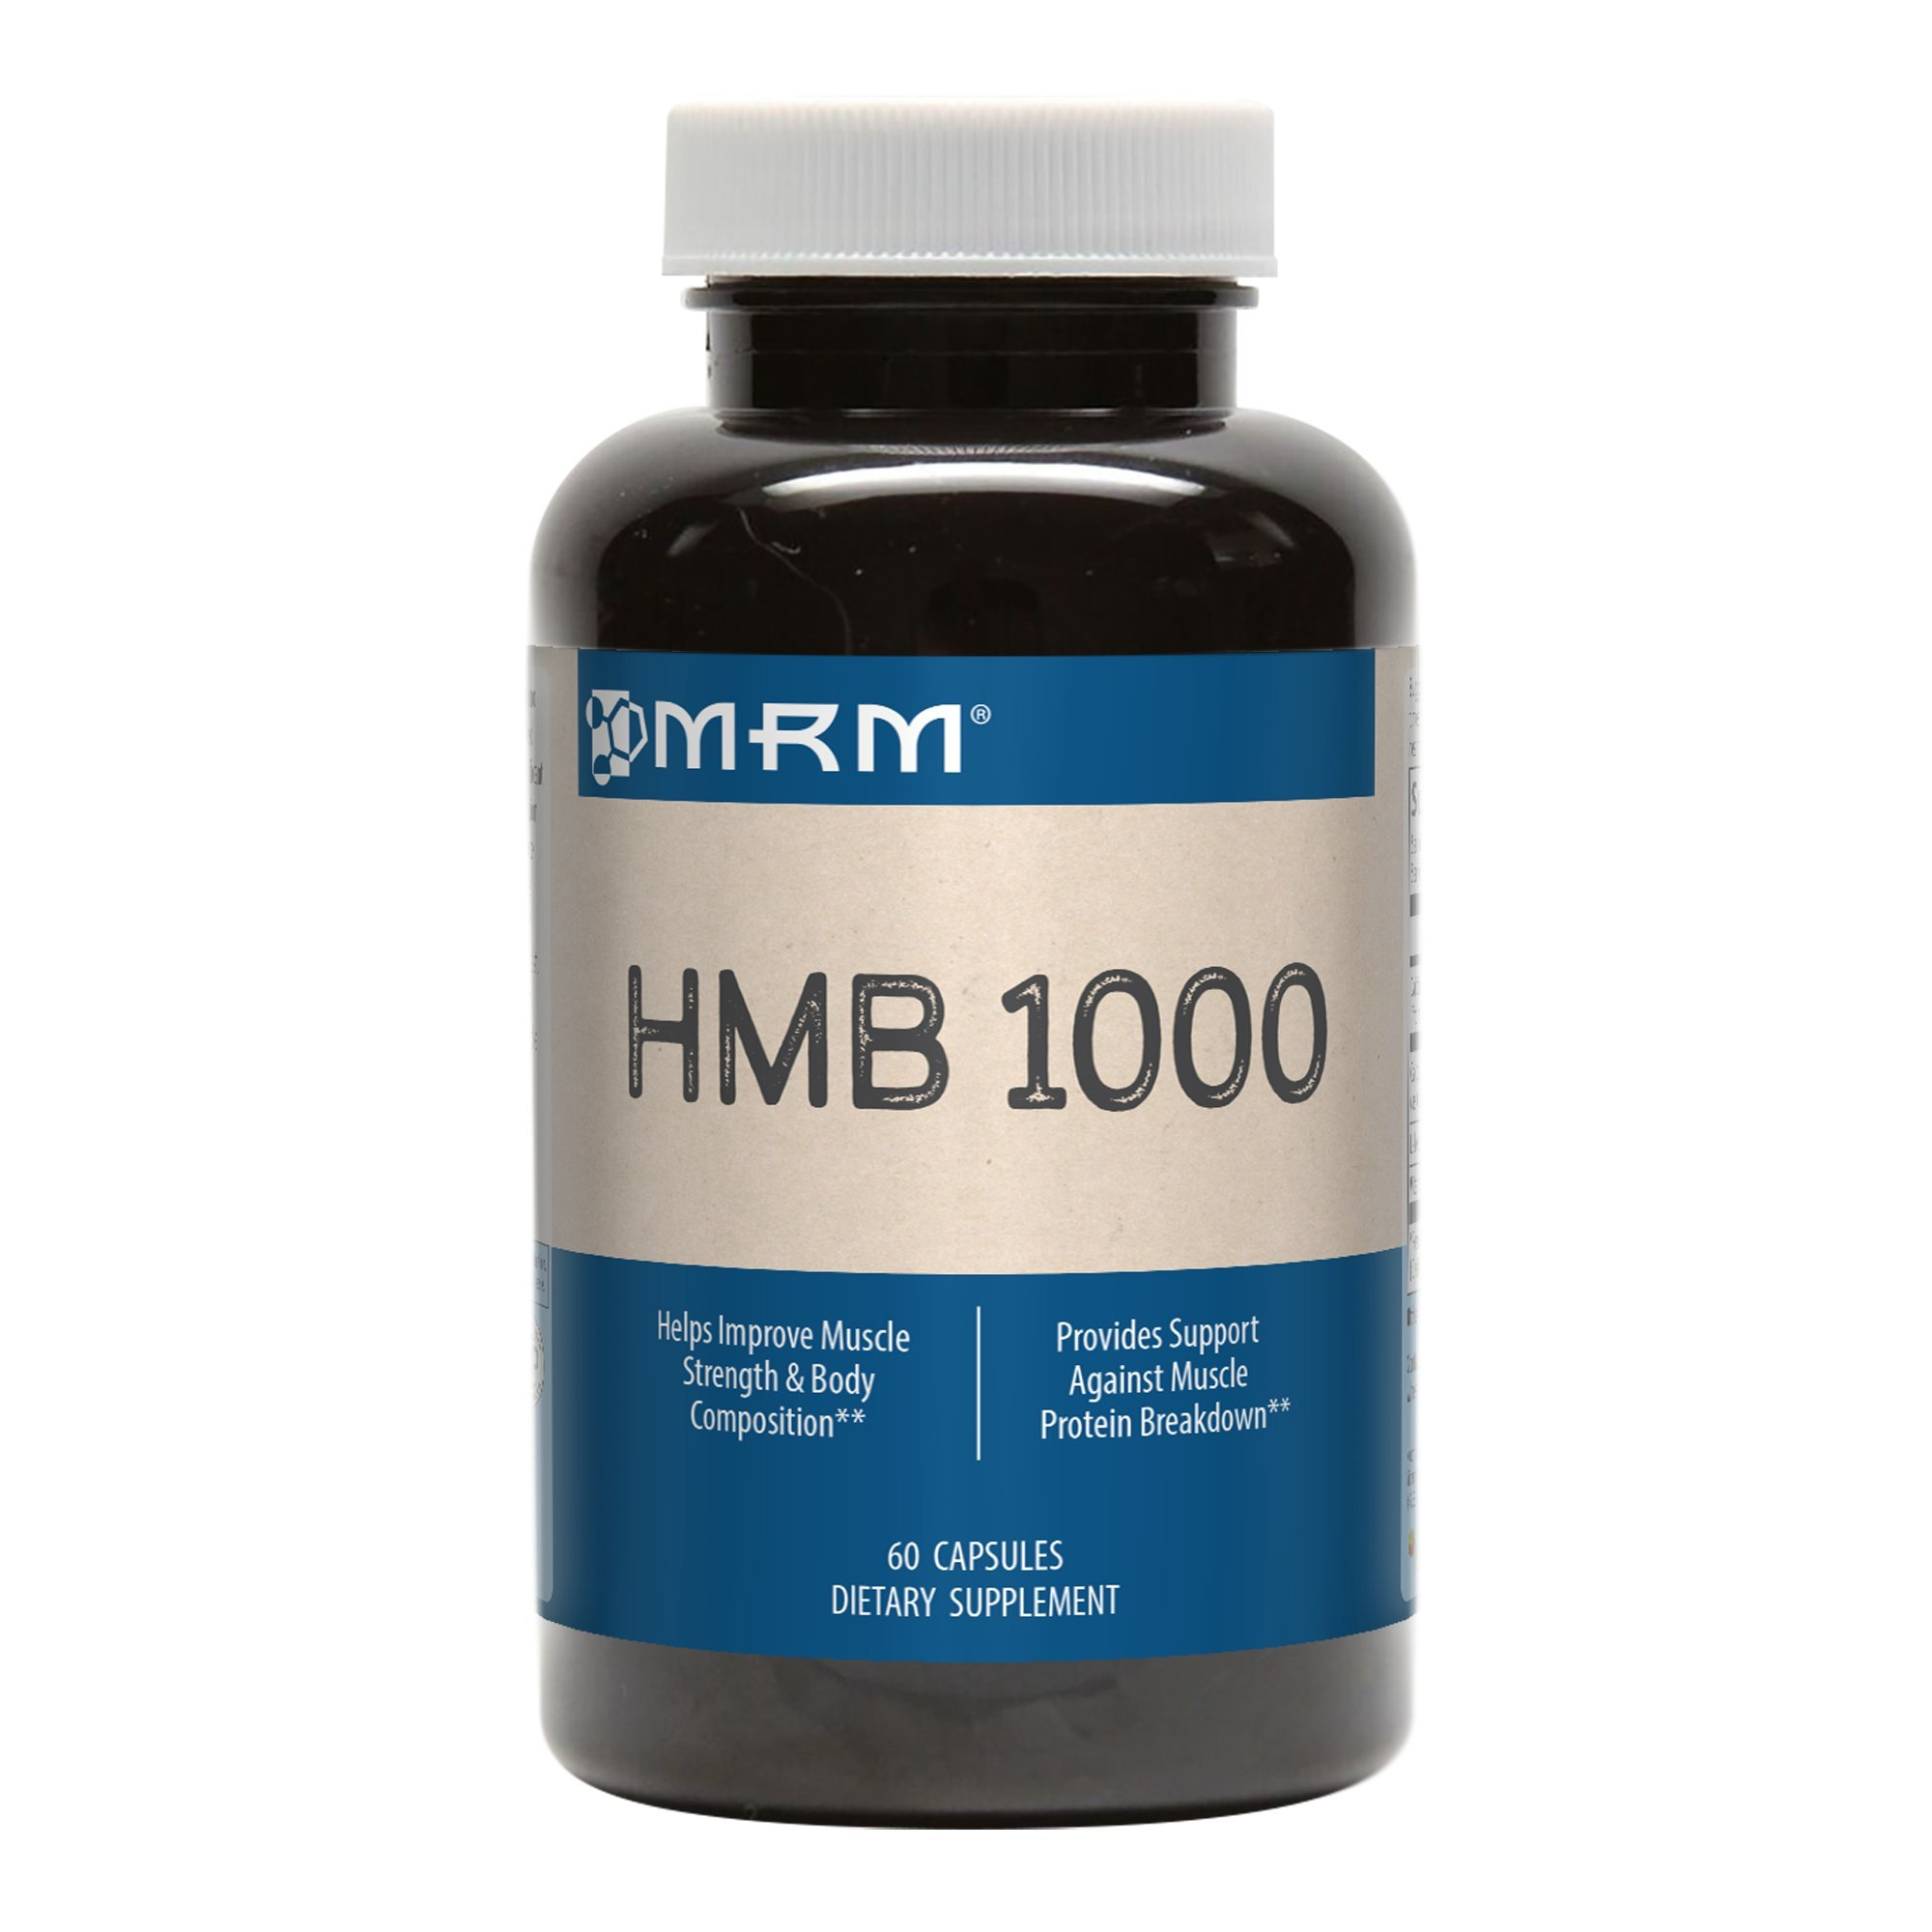 MRM - HMB 1000, Muscle Maintenance, Helps Improve Muscle Strength and Body Composition (60 Count) by MRM (Image #1)